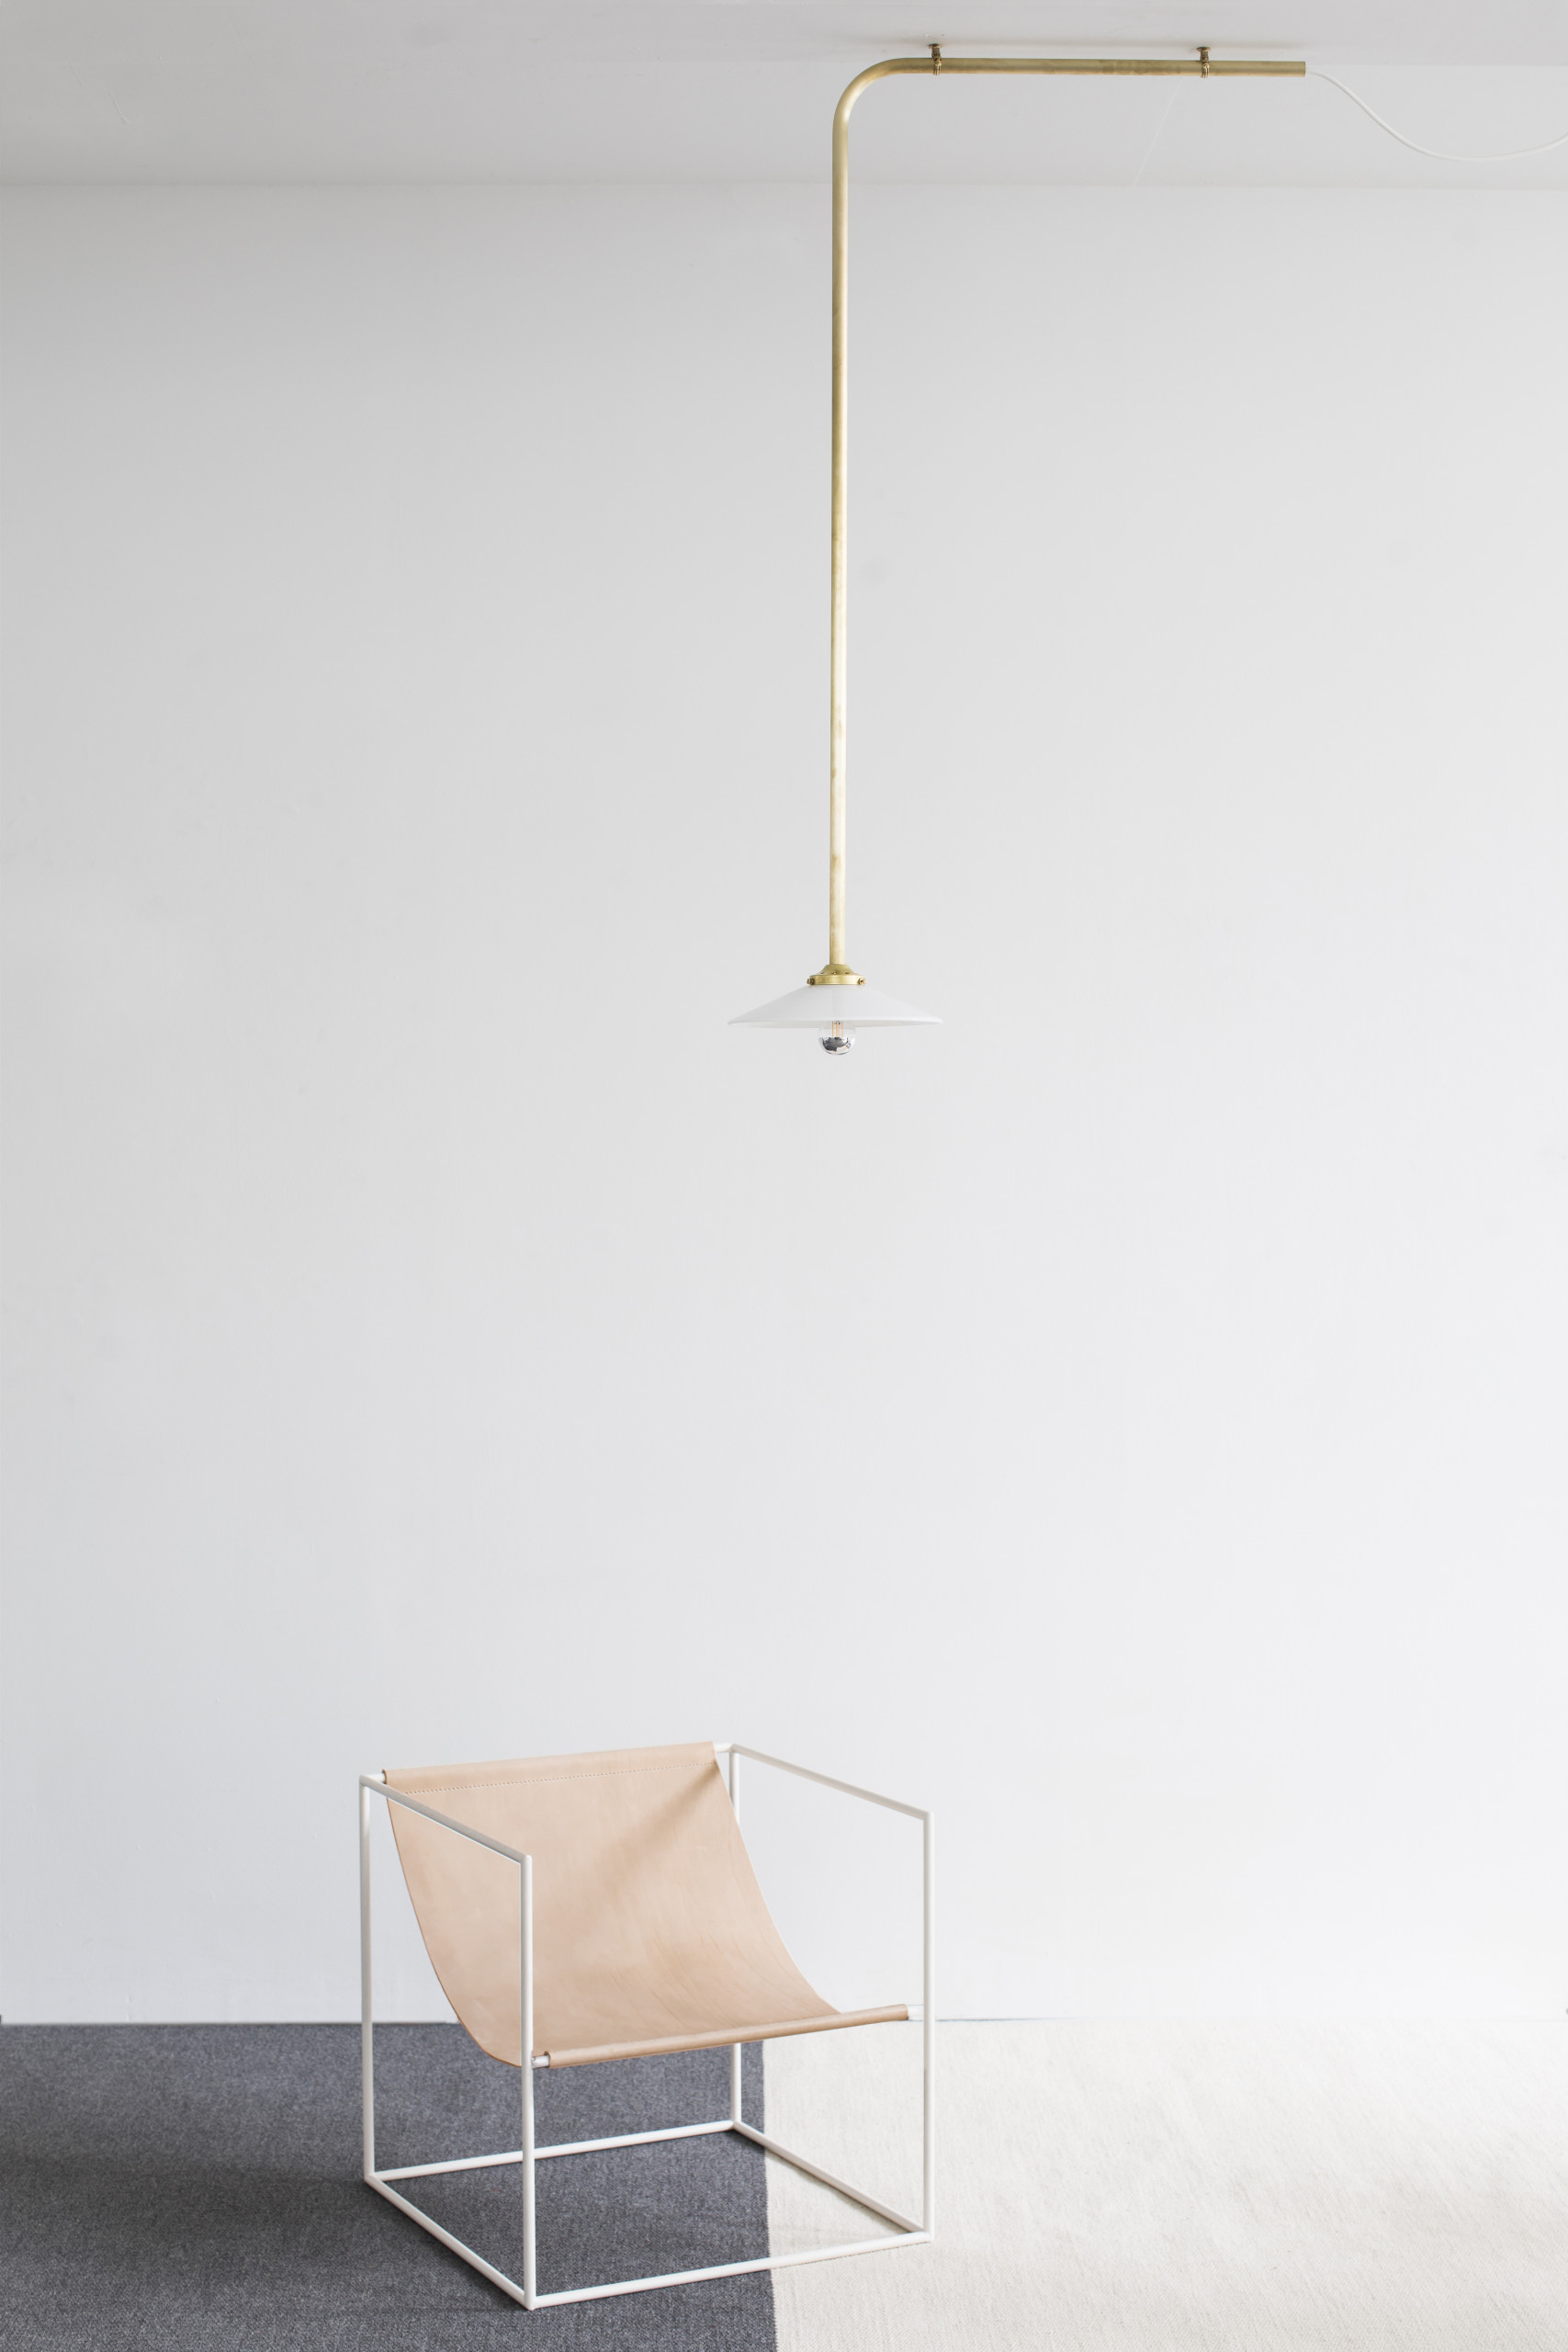 Solo Seat - <p>This solo seat is a core version of the famous duo seat that Muller Van Severen presented in 2012 during their break-through show at Interieur Kortrijk. The basic concept remains the same: creating a seat that consists of nothing more than a cloth and a steel frame. The cloth is made from bleak leather that ages beautifully over the years, the frame comes in two colors: white and a nice red. Both colours match perfectly with the leather.</p>  | Matter of Stuff